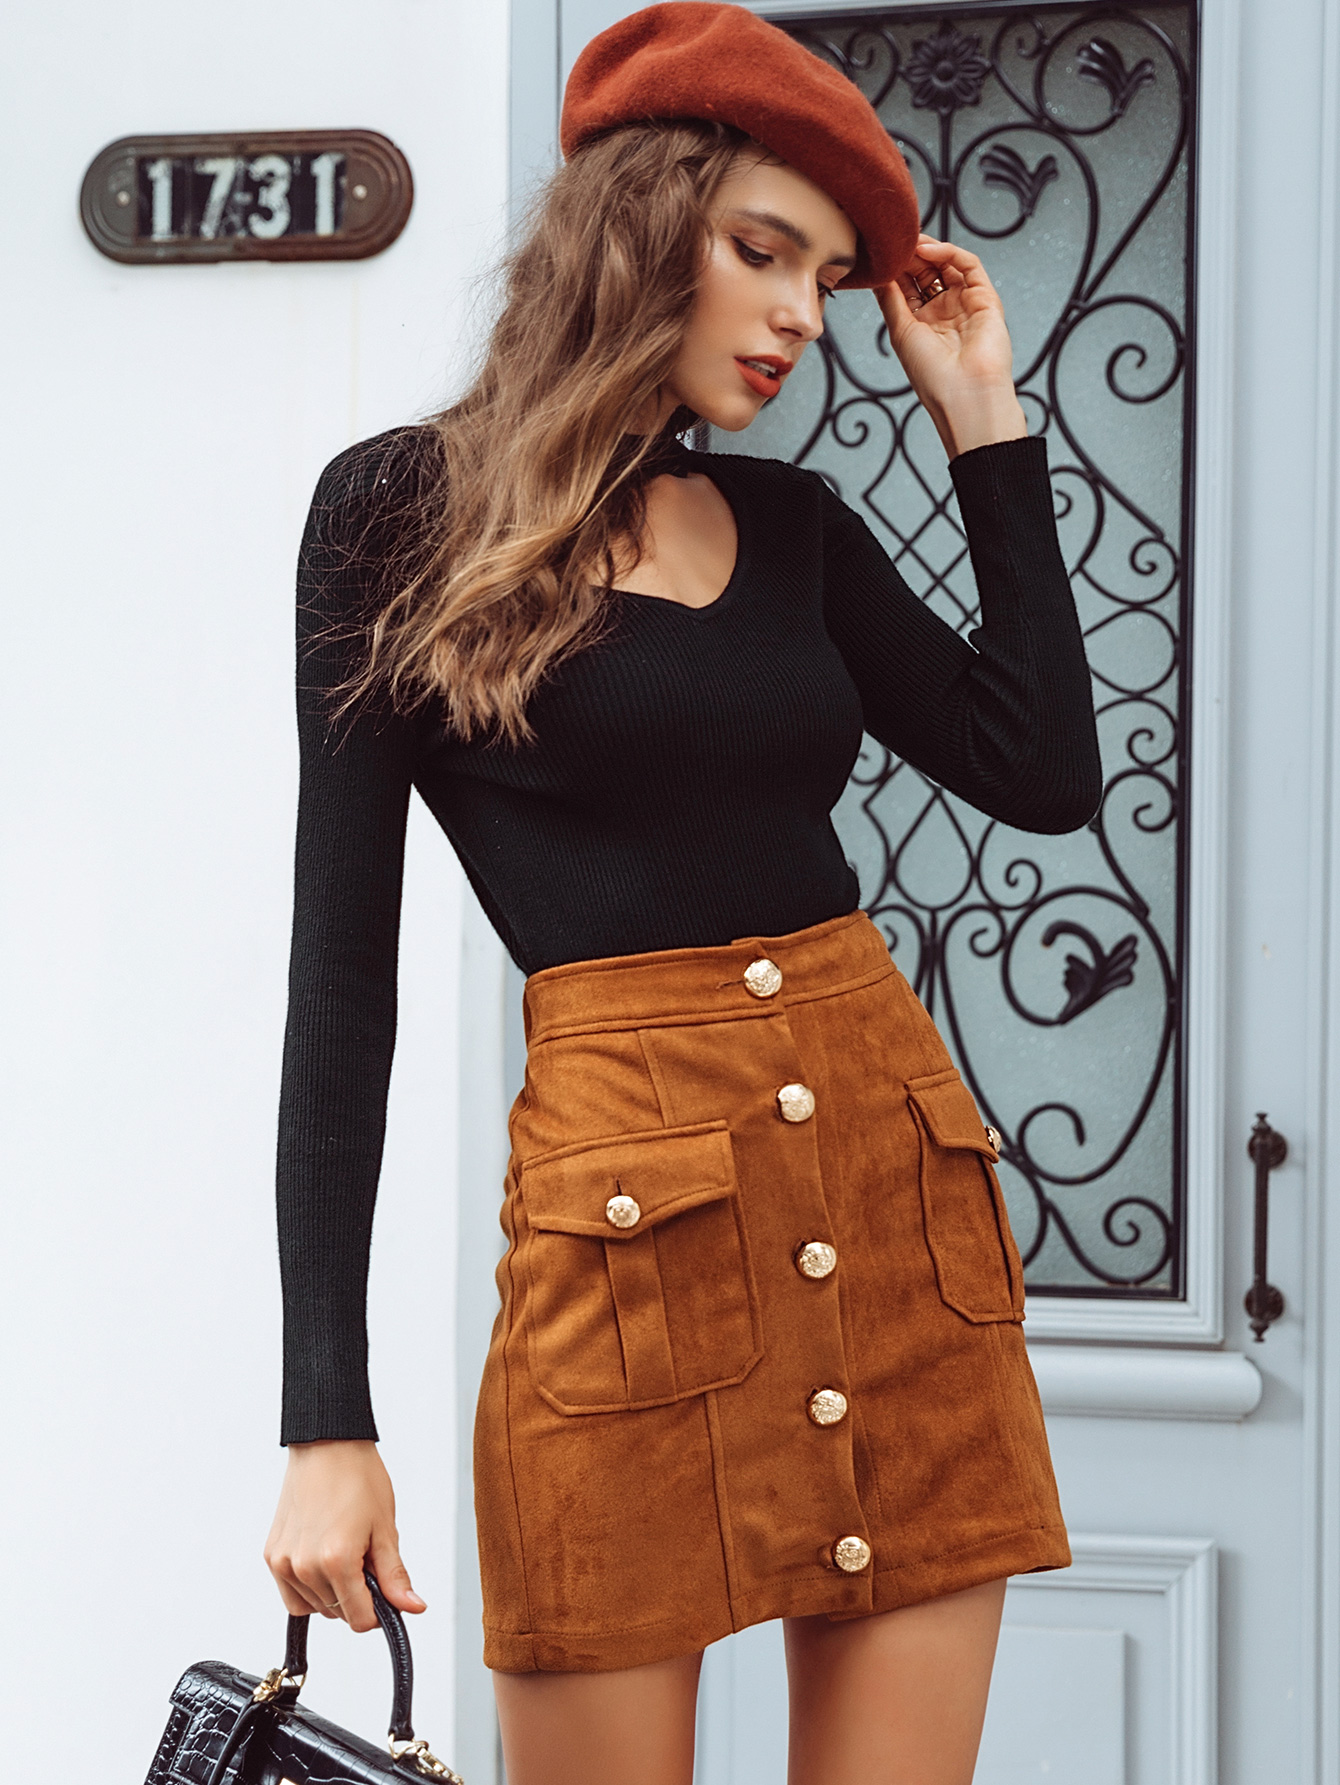 2019 new fashion women's skirt with pockets wholesale NHDE190255